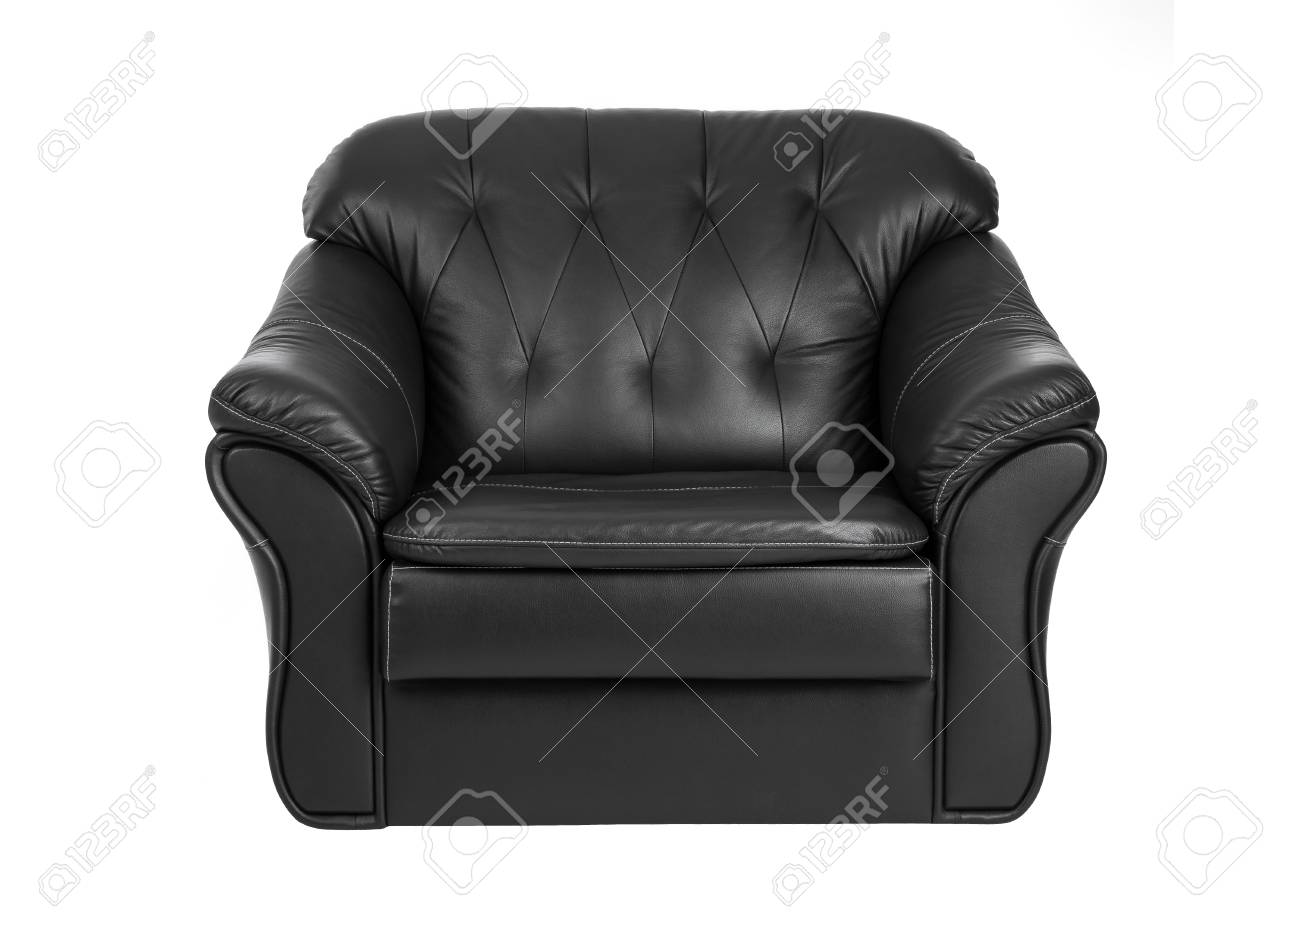 photo classic big black leather armchair isolated on white background